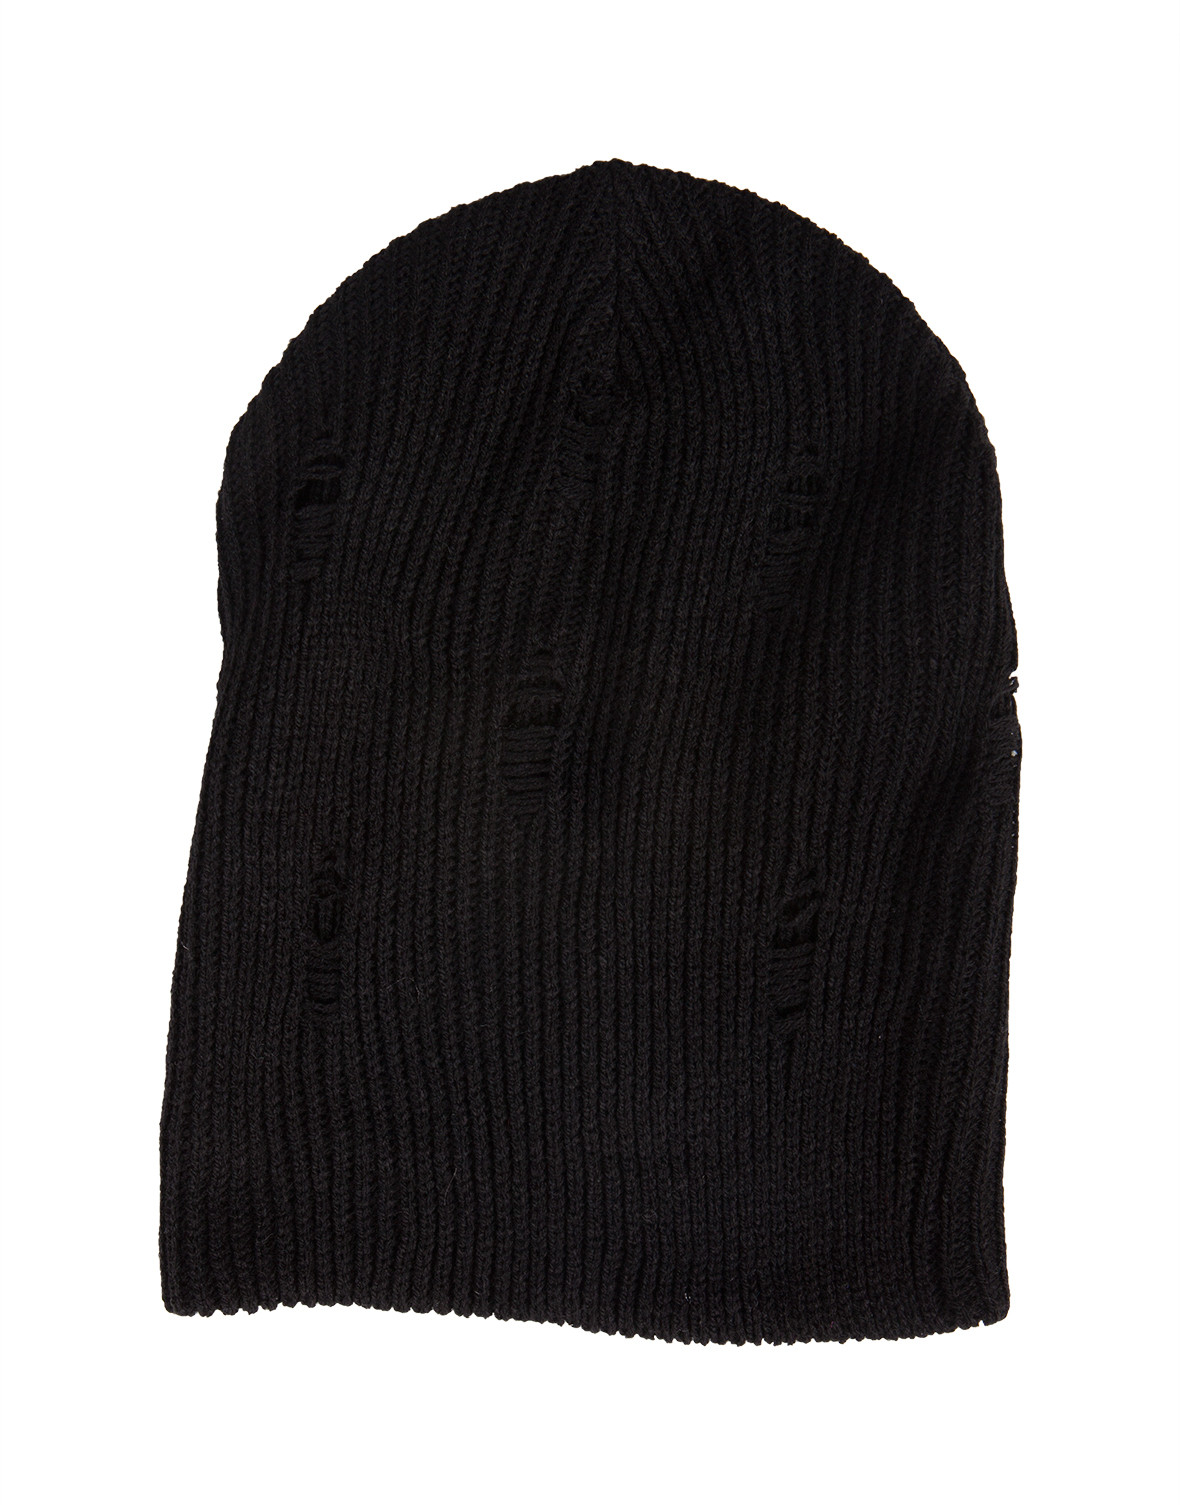 Shredded Knit Beanie | 2020AVE